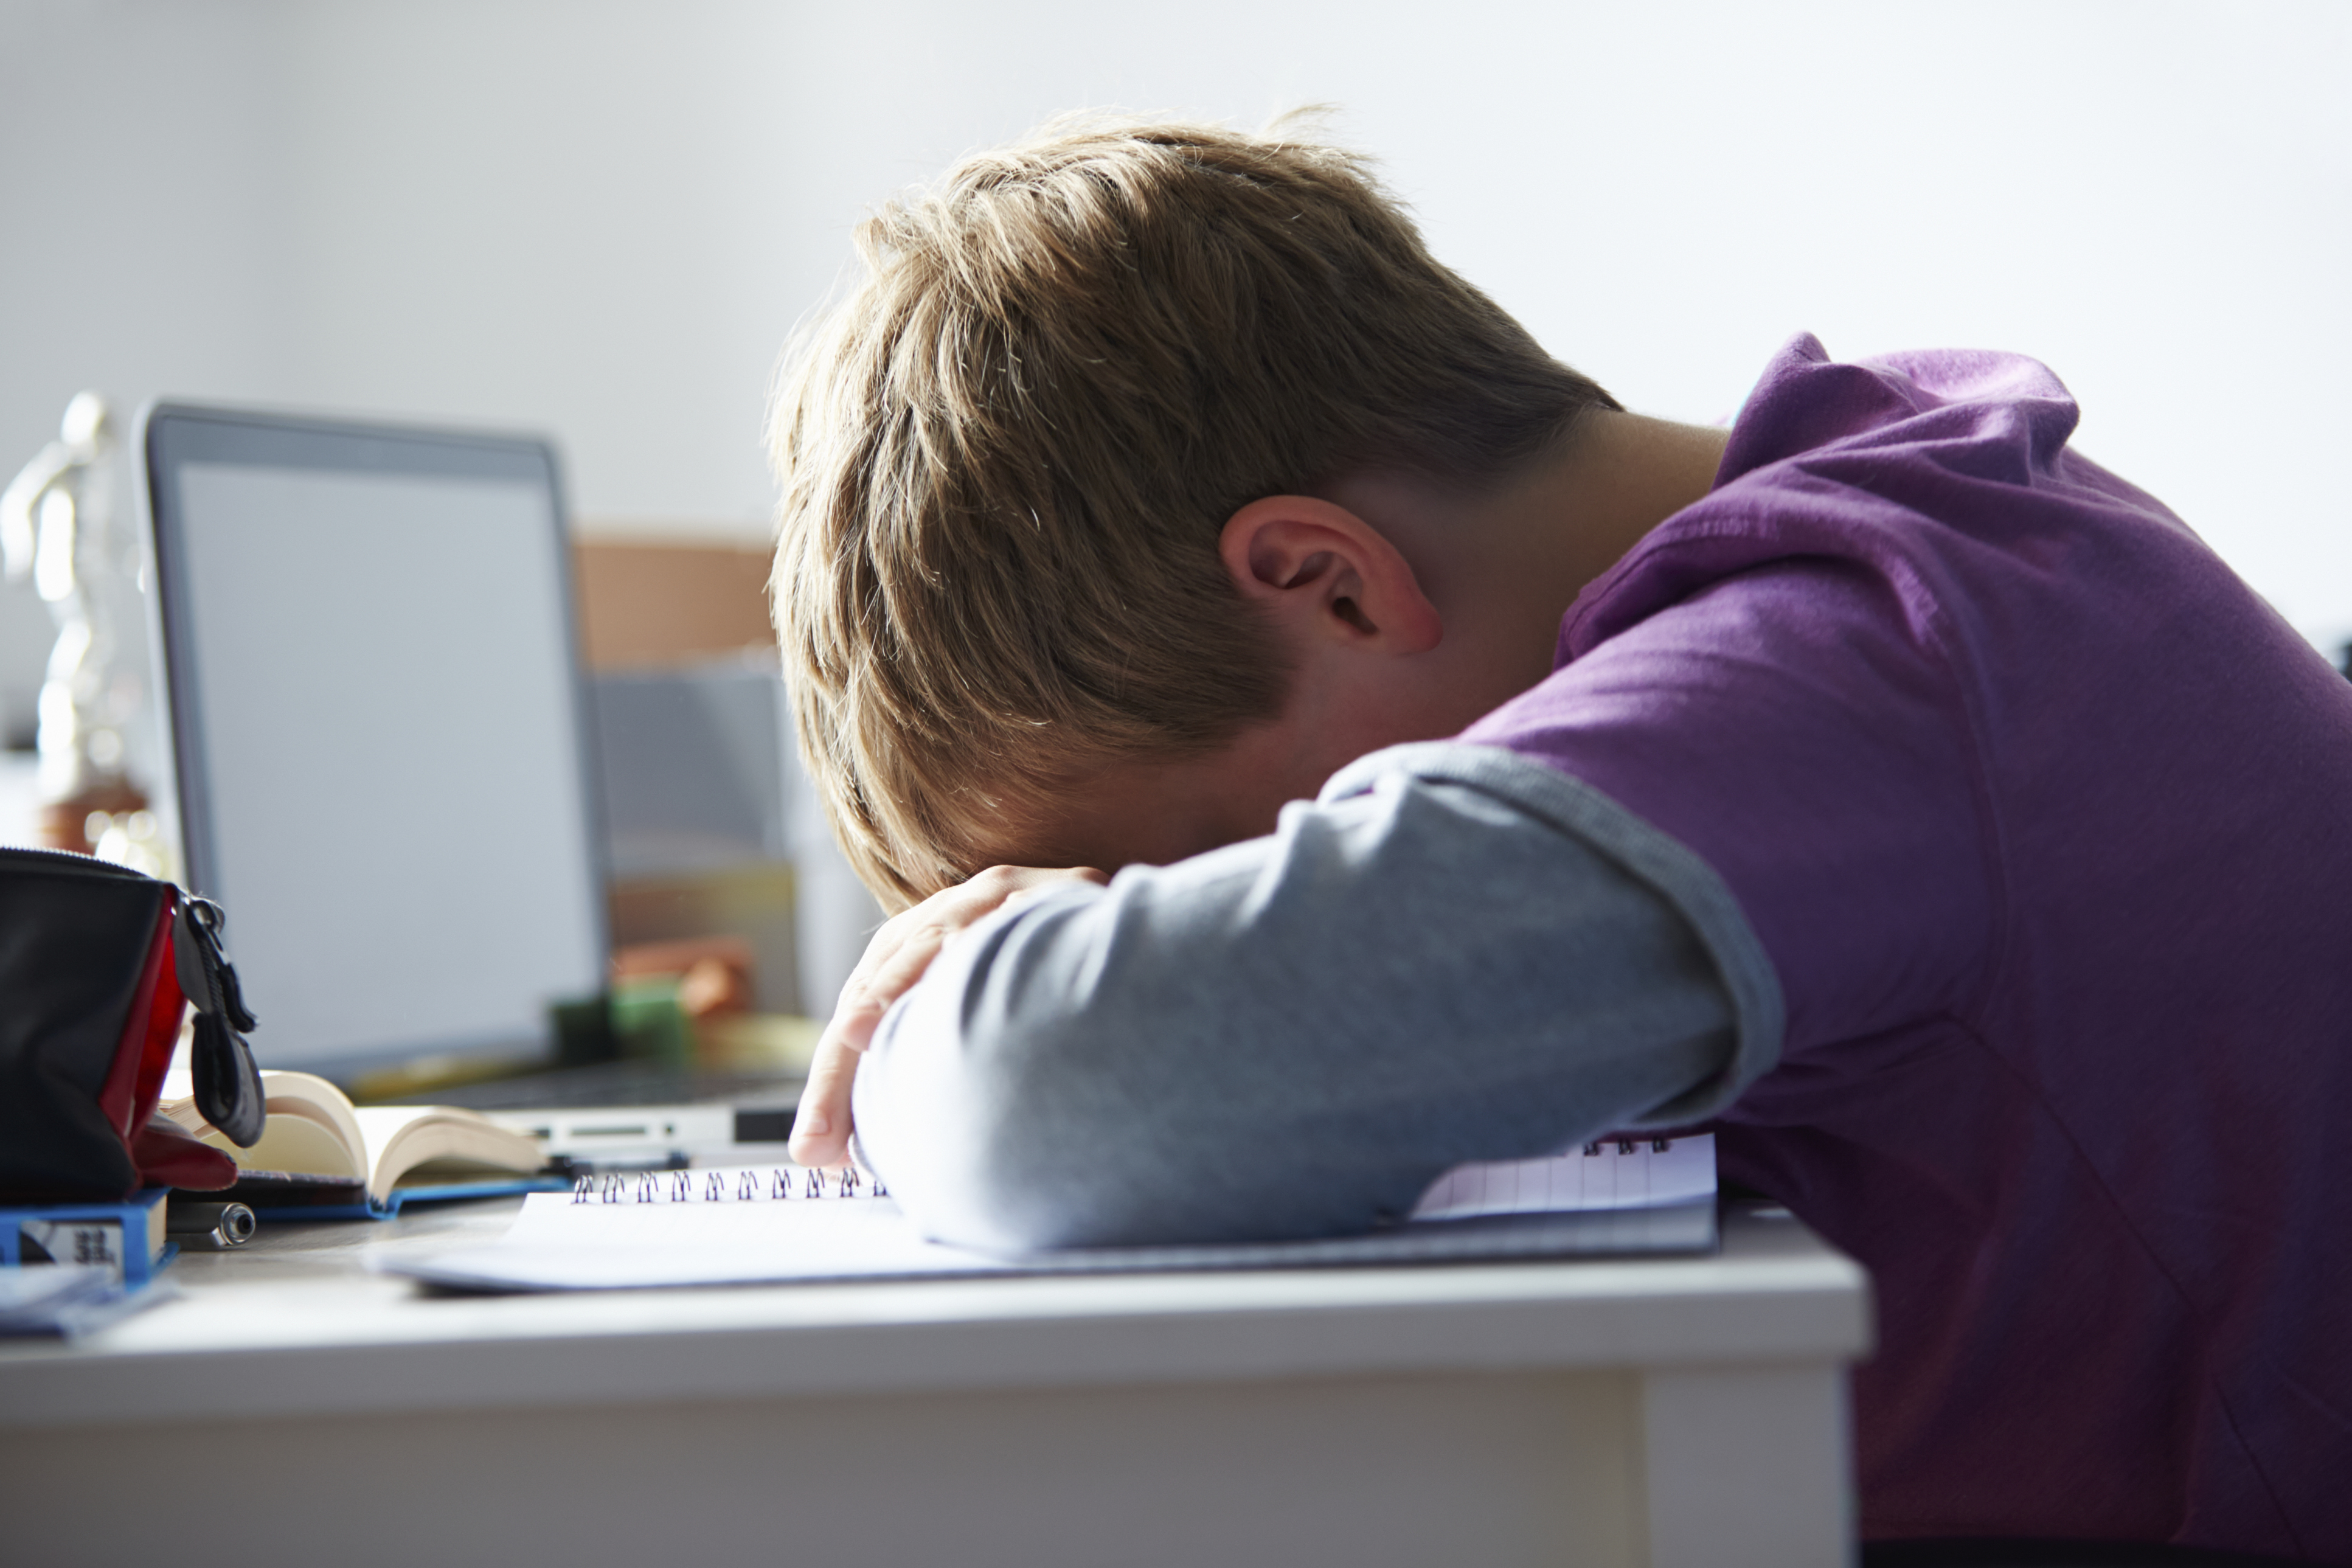 Stress, anxiety plaguing more young kids